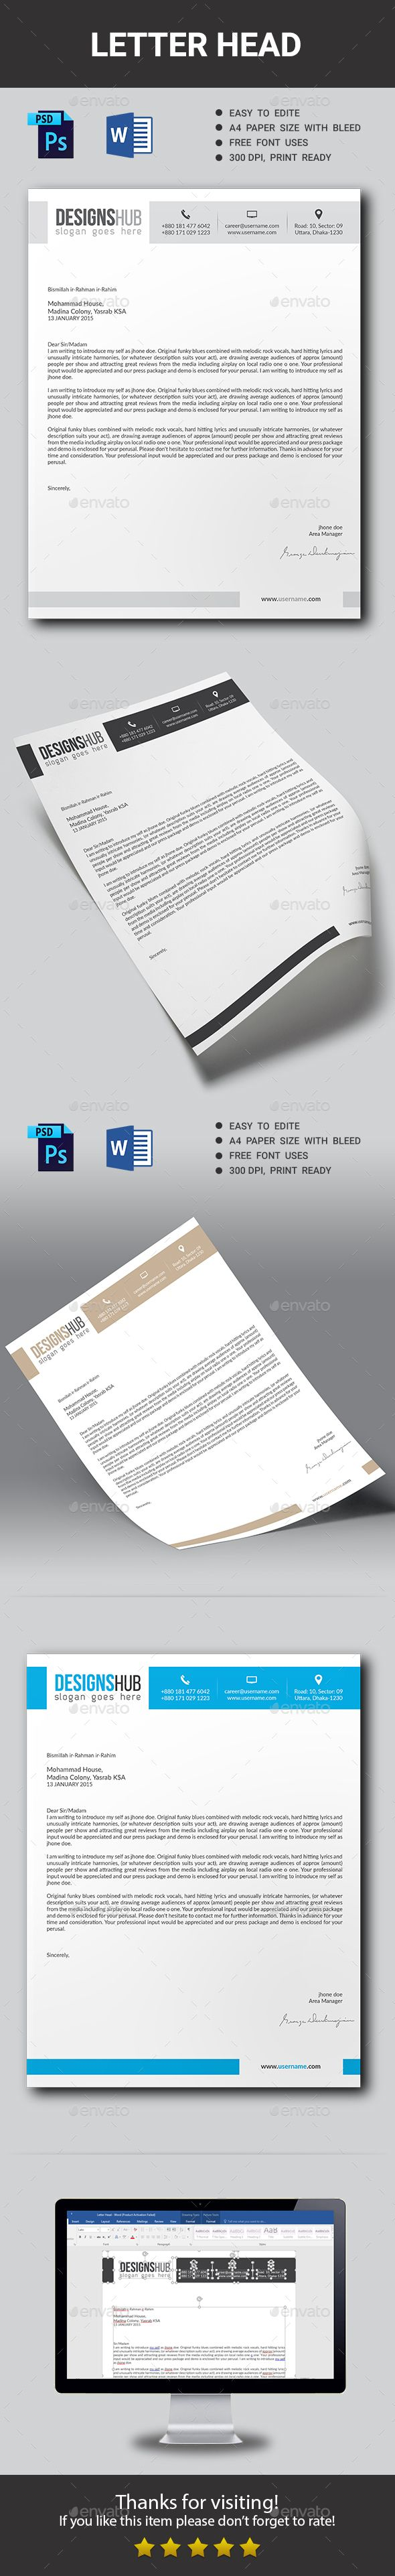 Best 25 Business Letter Head Ideas On Pinterest Business Cards